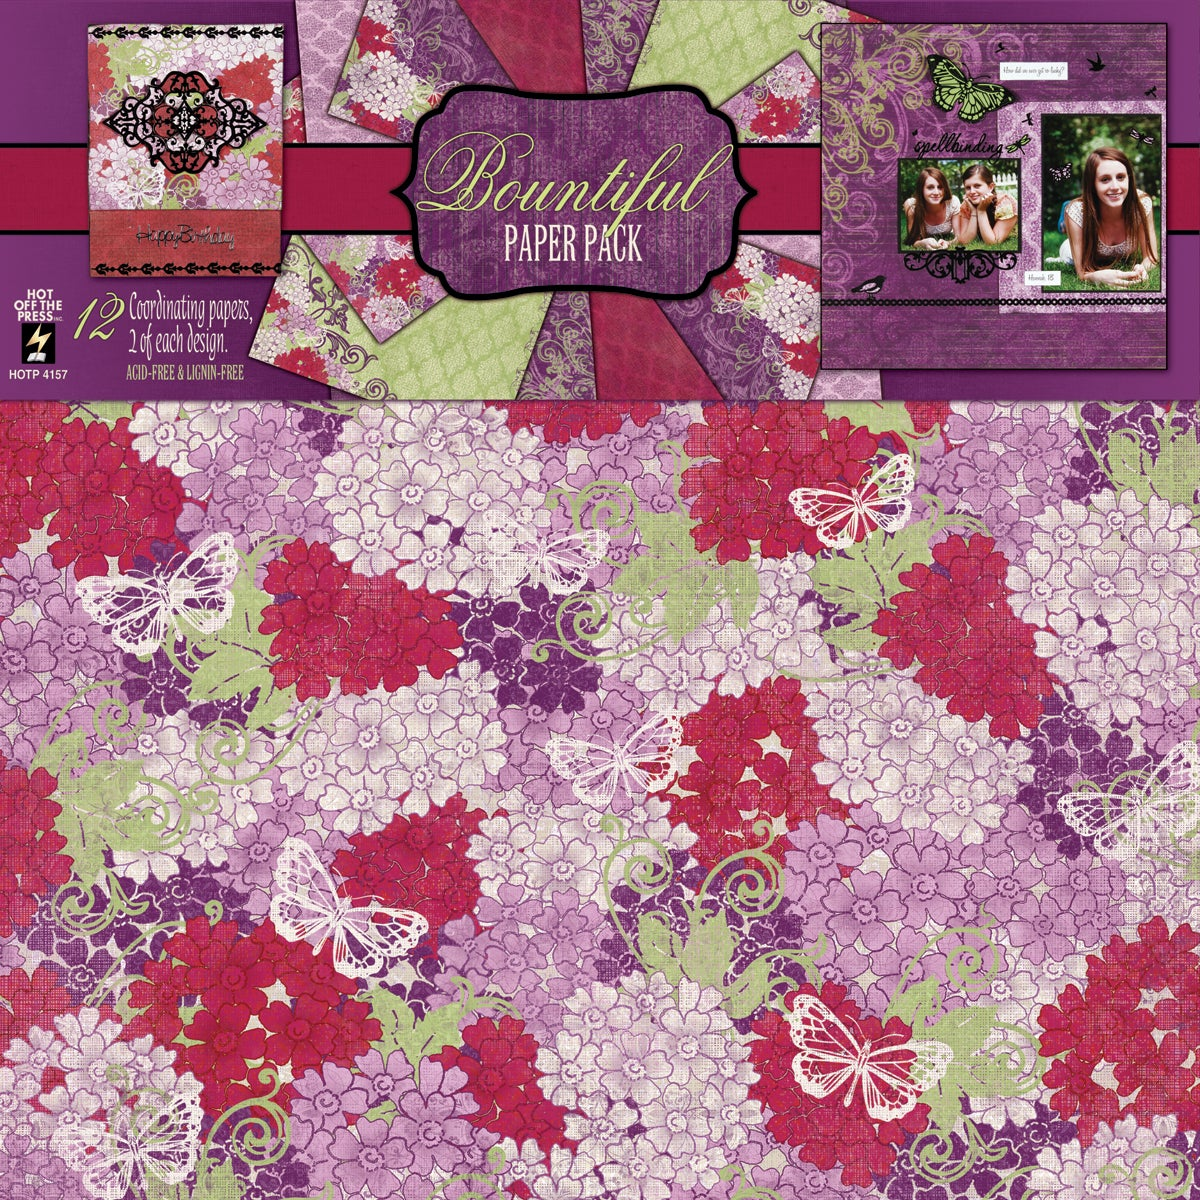 Bountiful 12x12 12 Sheets/ 6 Designs Paper Pack